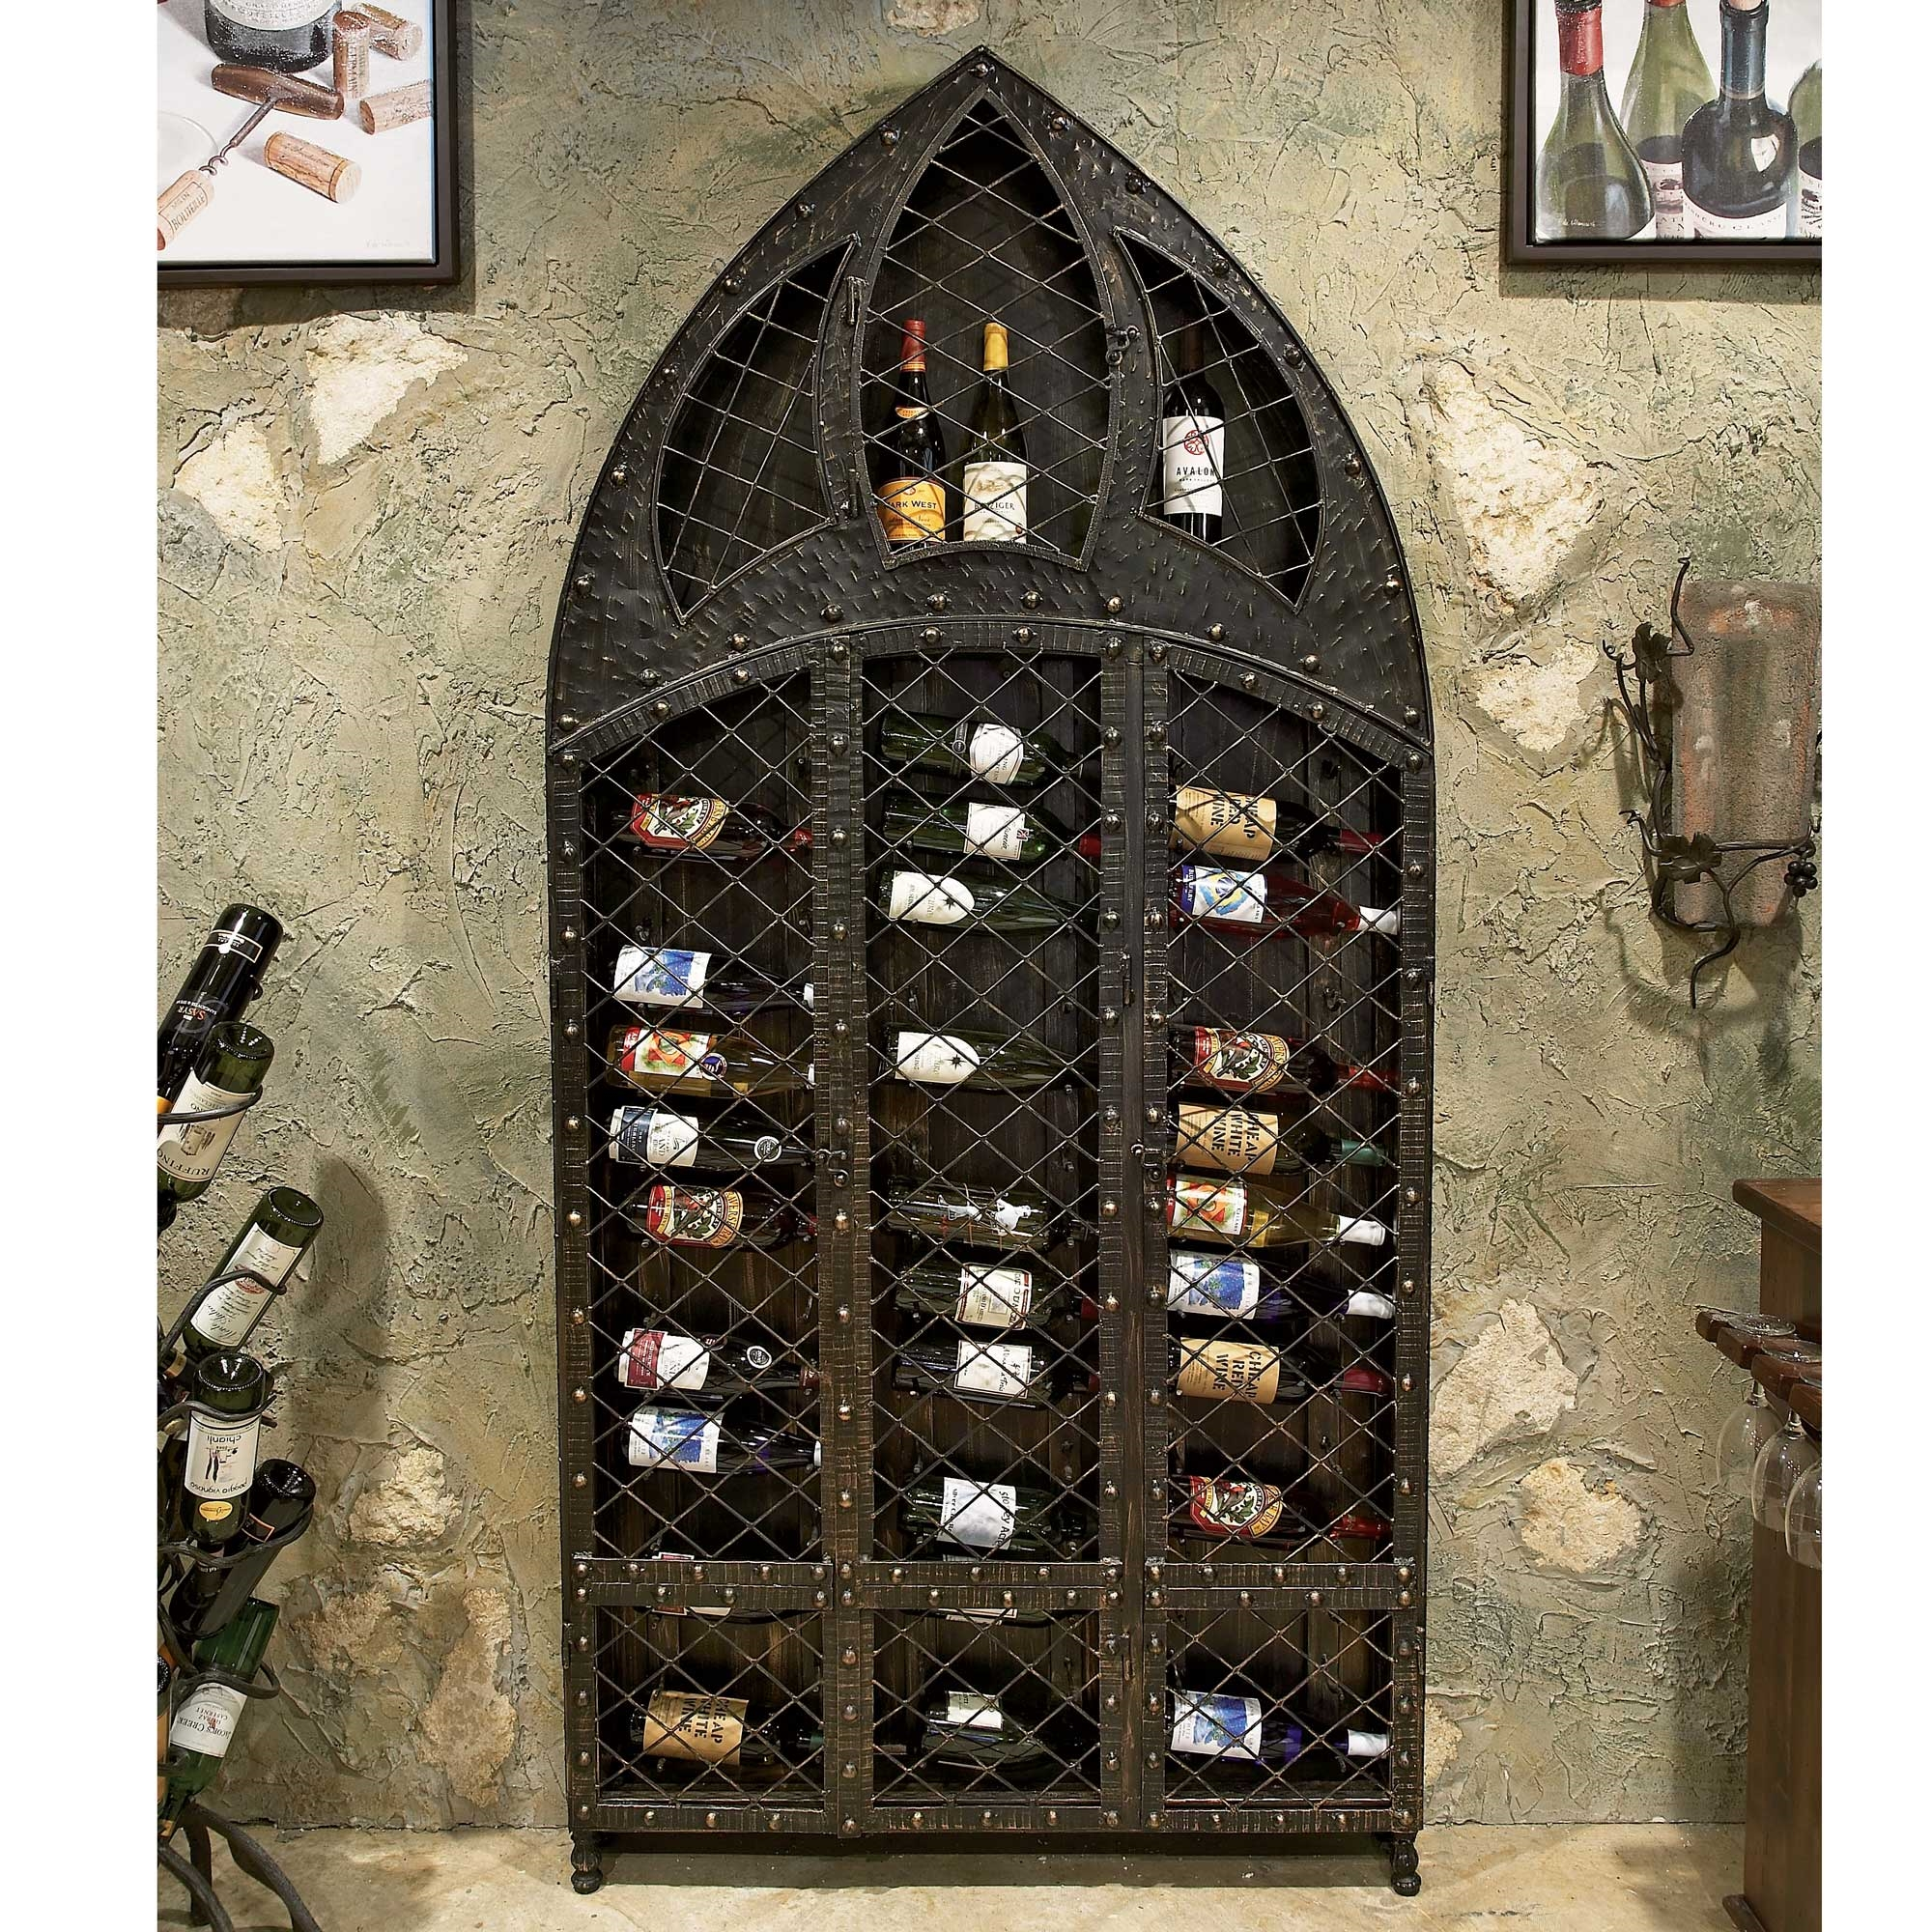 Pictured here is the wrought iron wine rack bottle